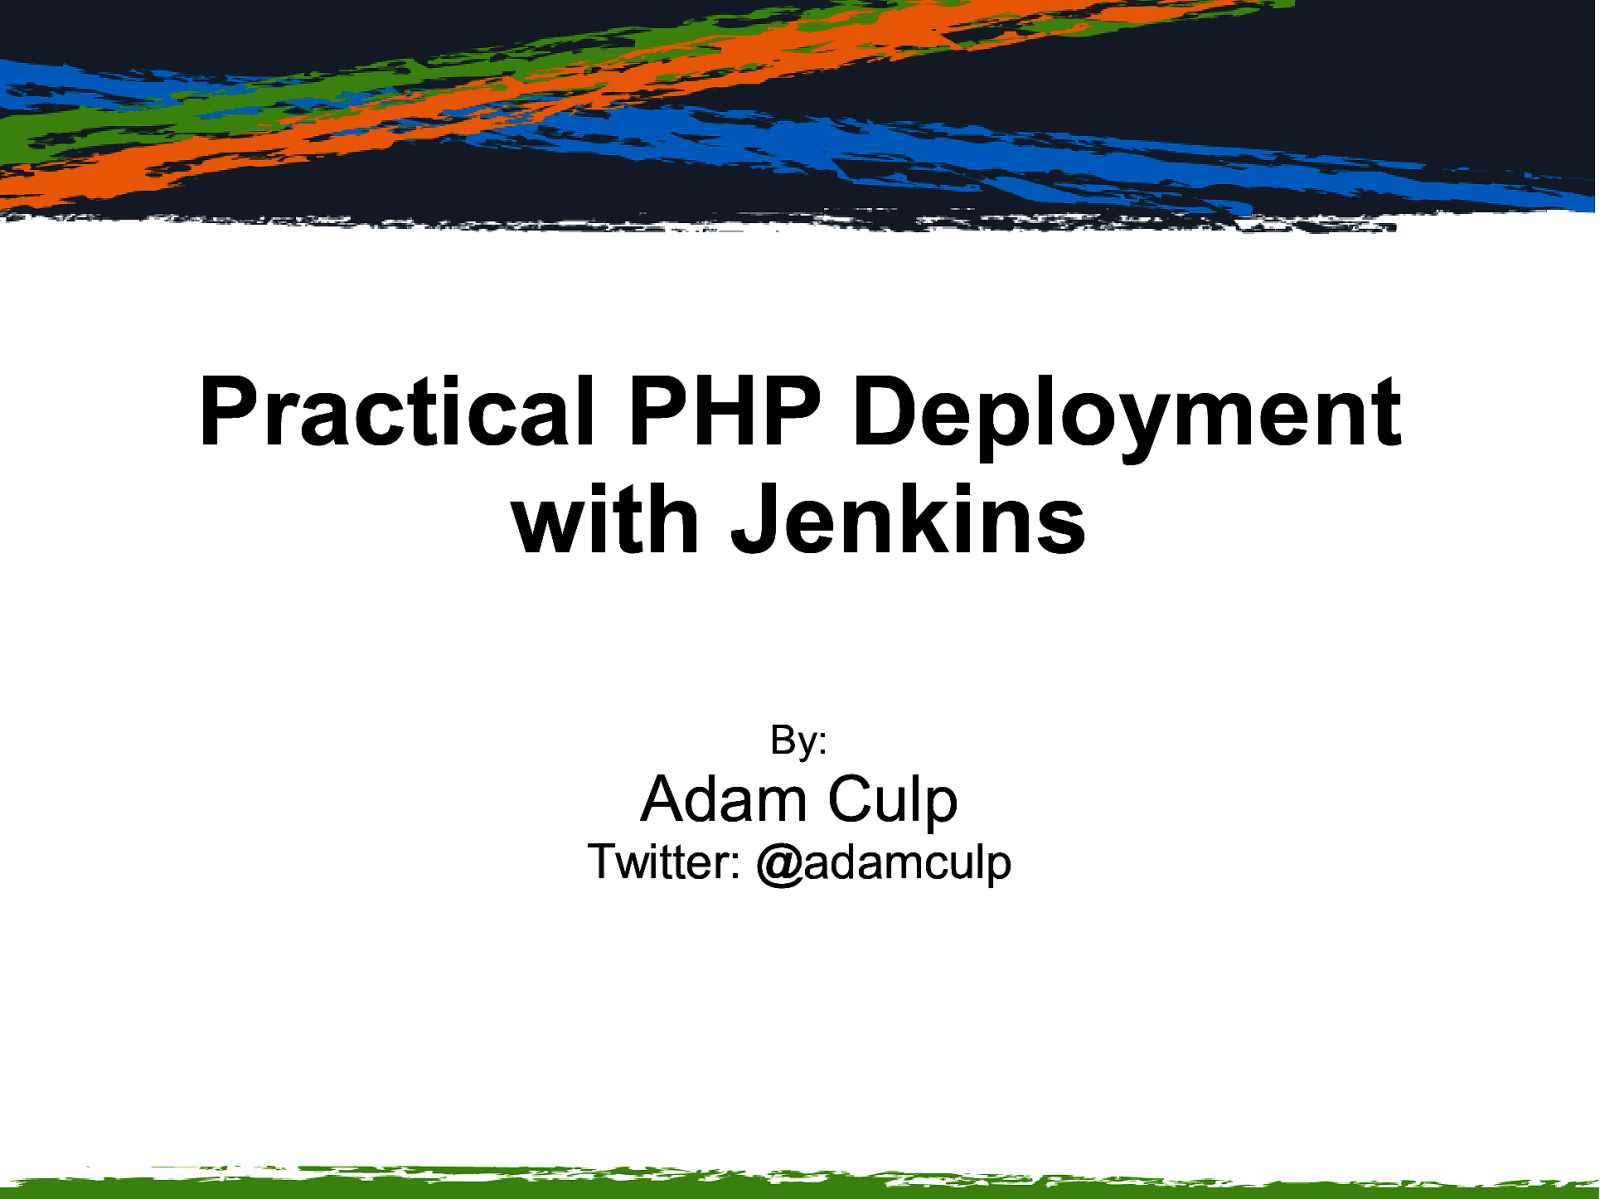 Practical PHP Deployment with Jenkins